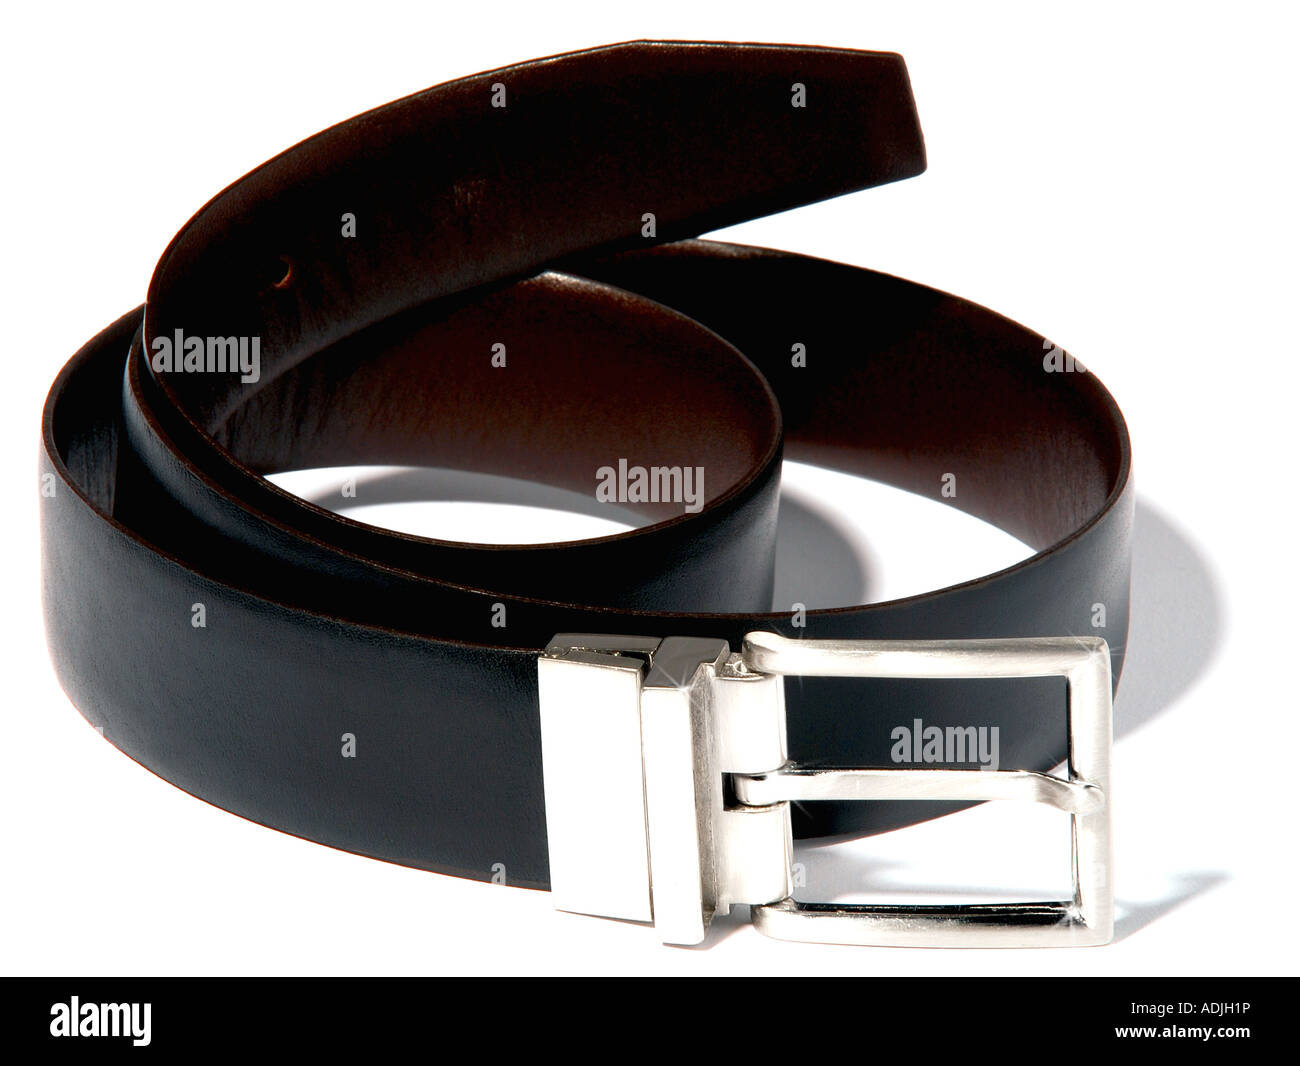 A mans two tone black and brown belt. Picture by Paddy McGuinness paddymcguinness - Stock Image